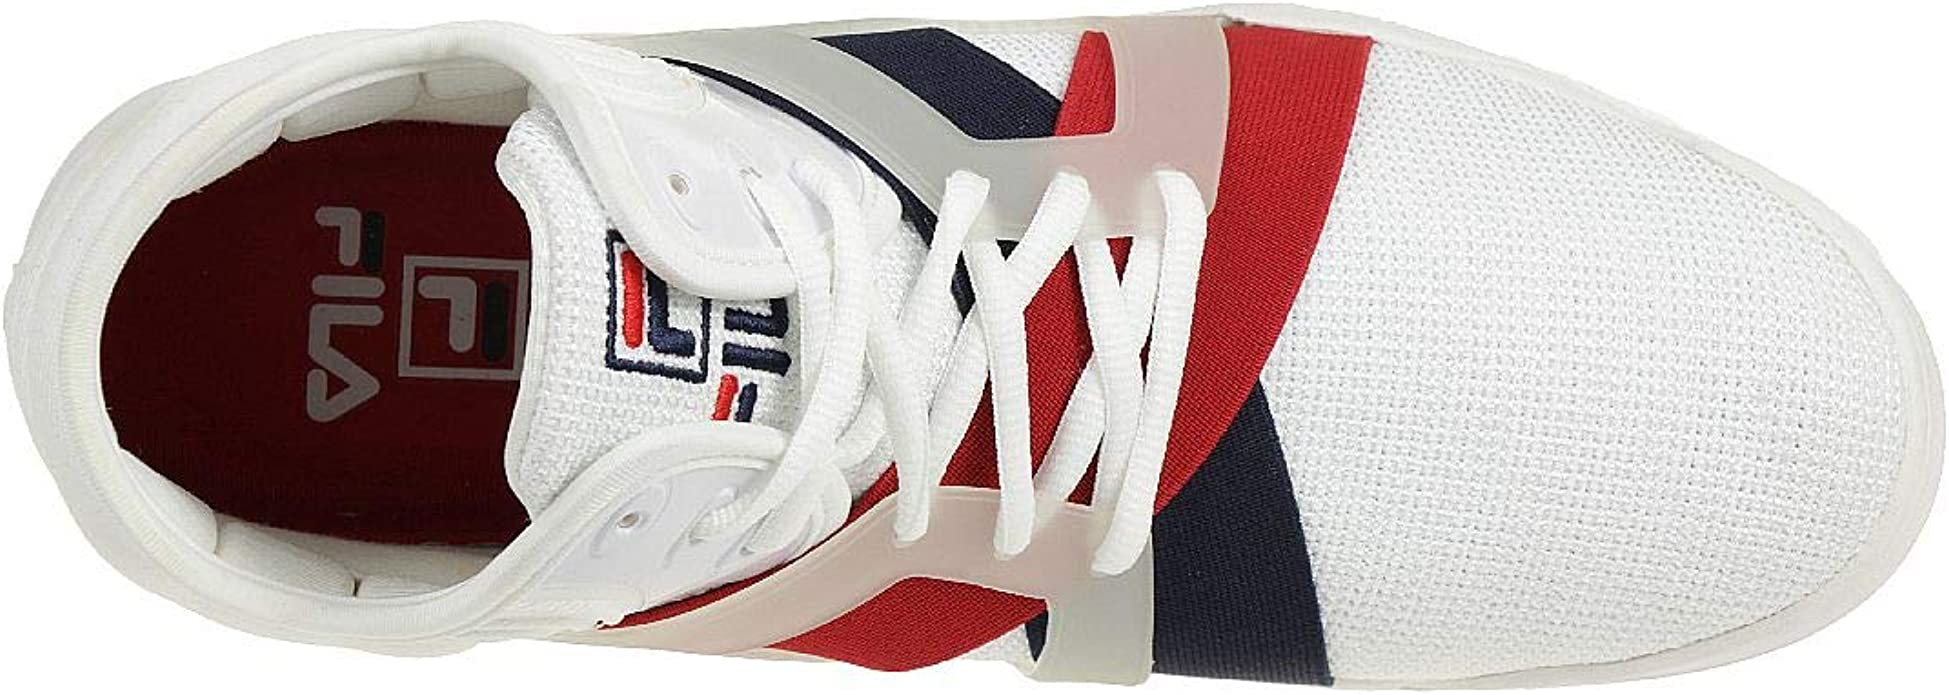 Fila Cage 17 White Navy Red 1BM00026125 Chaussures